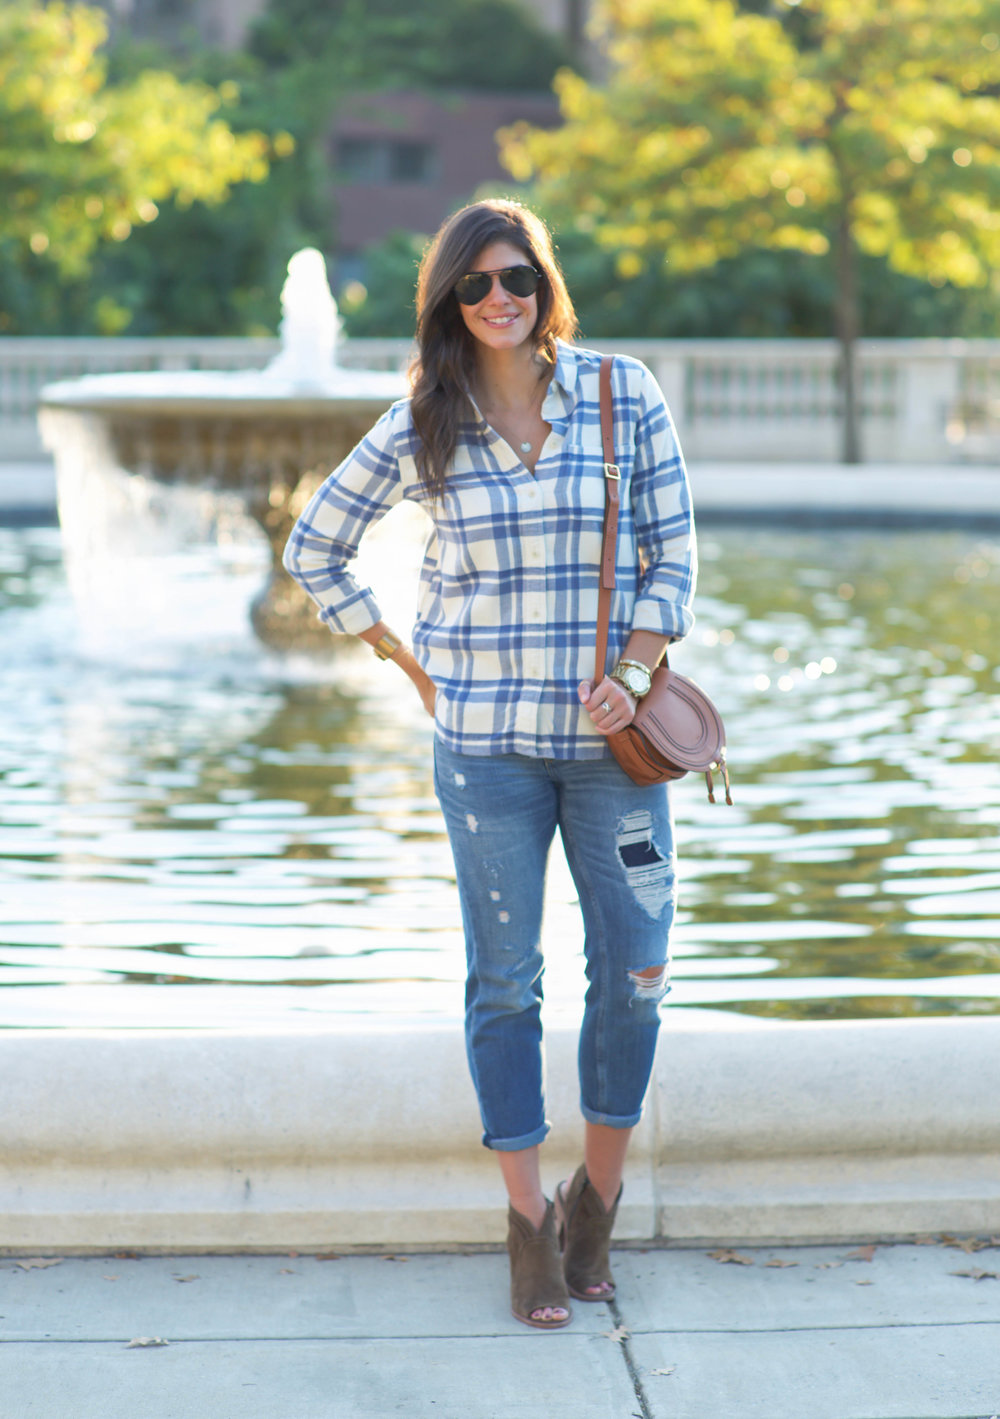 LaurenSchwaiger-Life-Style-Blog-Fall-Fashion-Madewell-Flannel.jpg